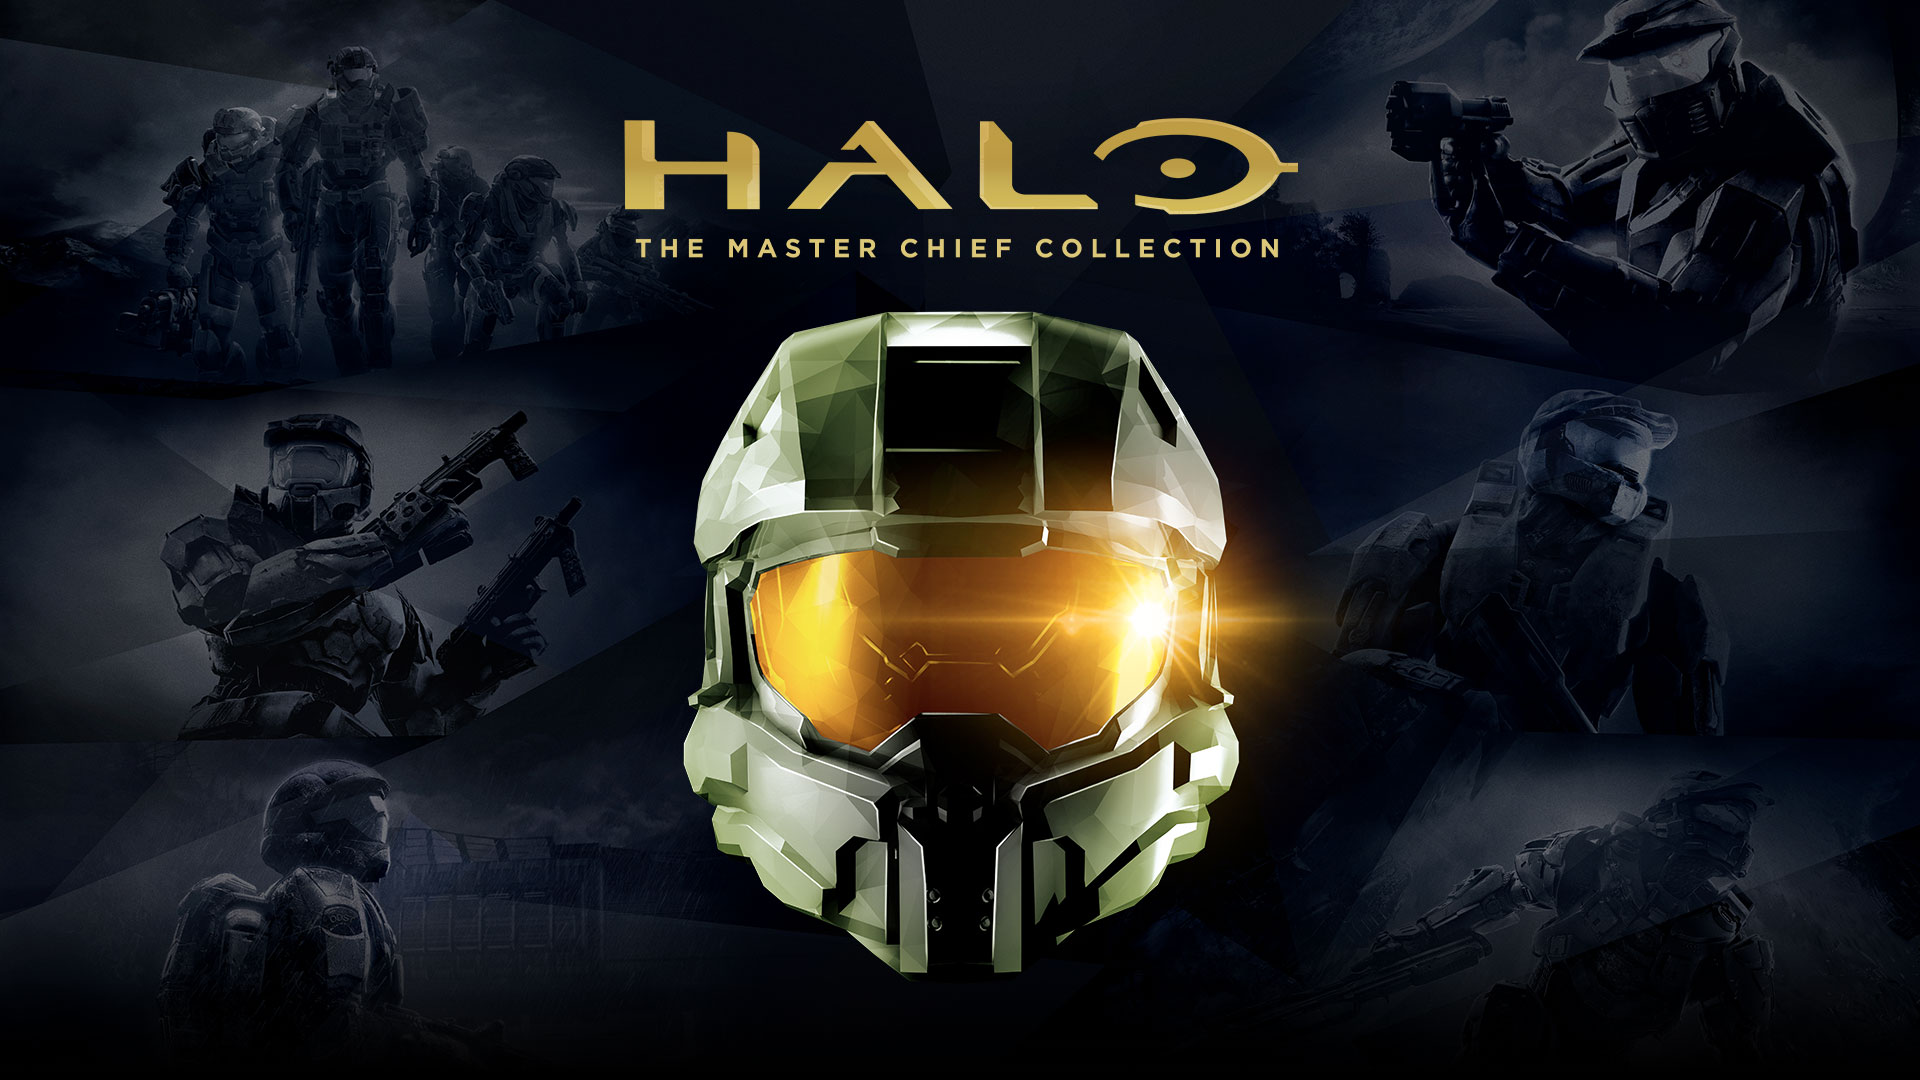 Halo The Master Chief Collection, Master Chief Helm vor transparentem Hintergrund von Halo Boxshots